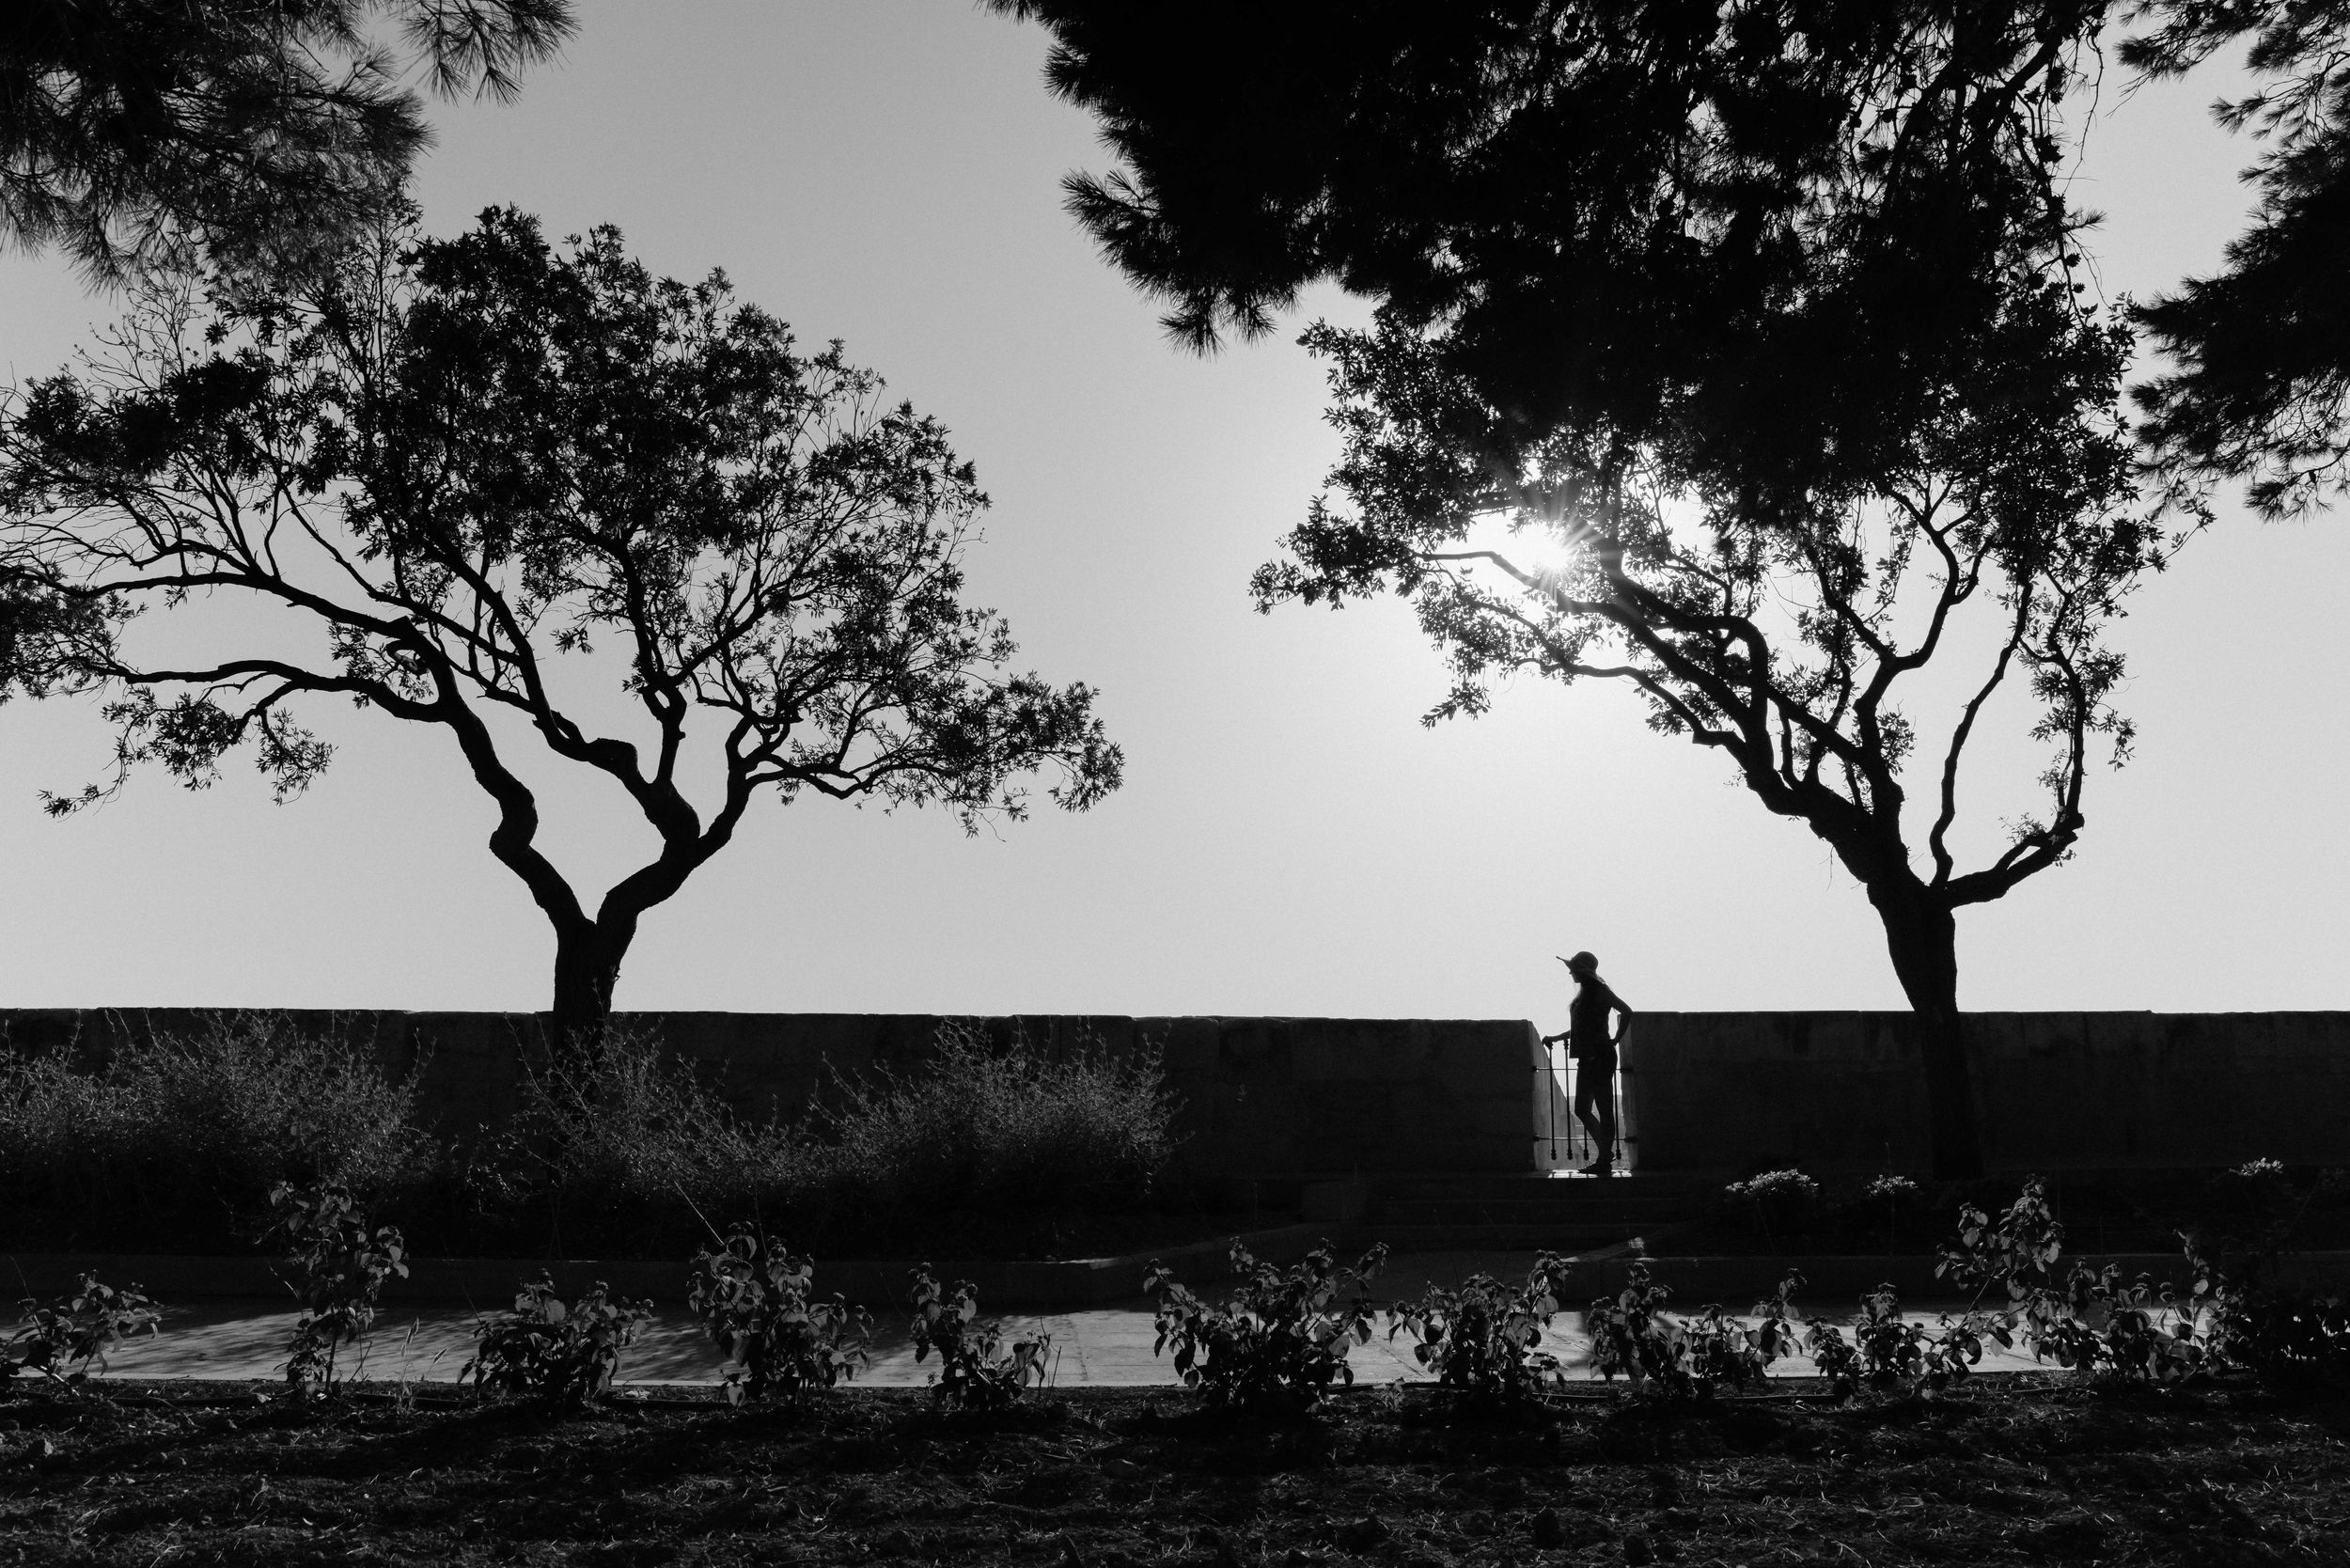 Silhouette of a woman in a hat standing admiring scenery in a gap in the wall of a garden in Valetta, Malta.